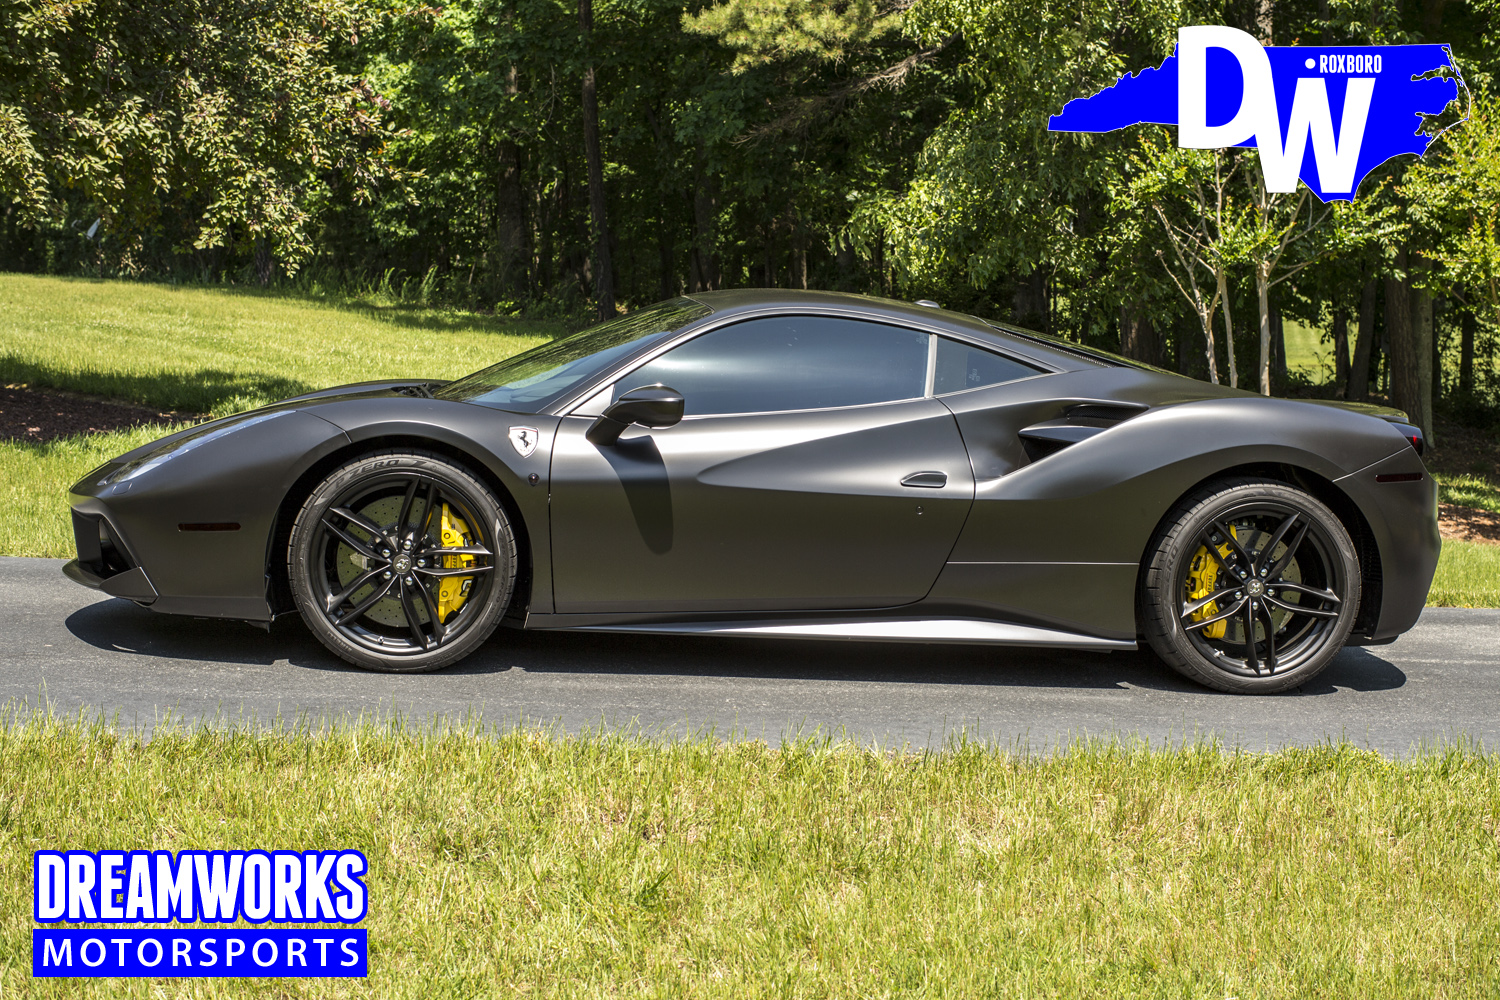 Ferrari_488_Satin_Black_Wrap_Murdered_Out_by_Dreamworks-Motorsports-4.jpg